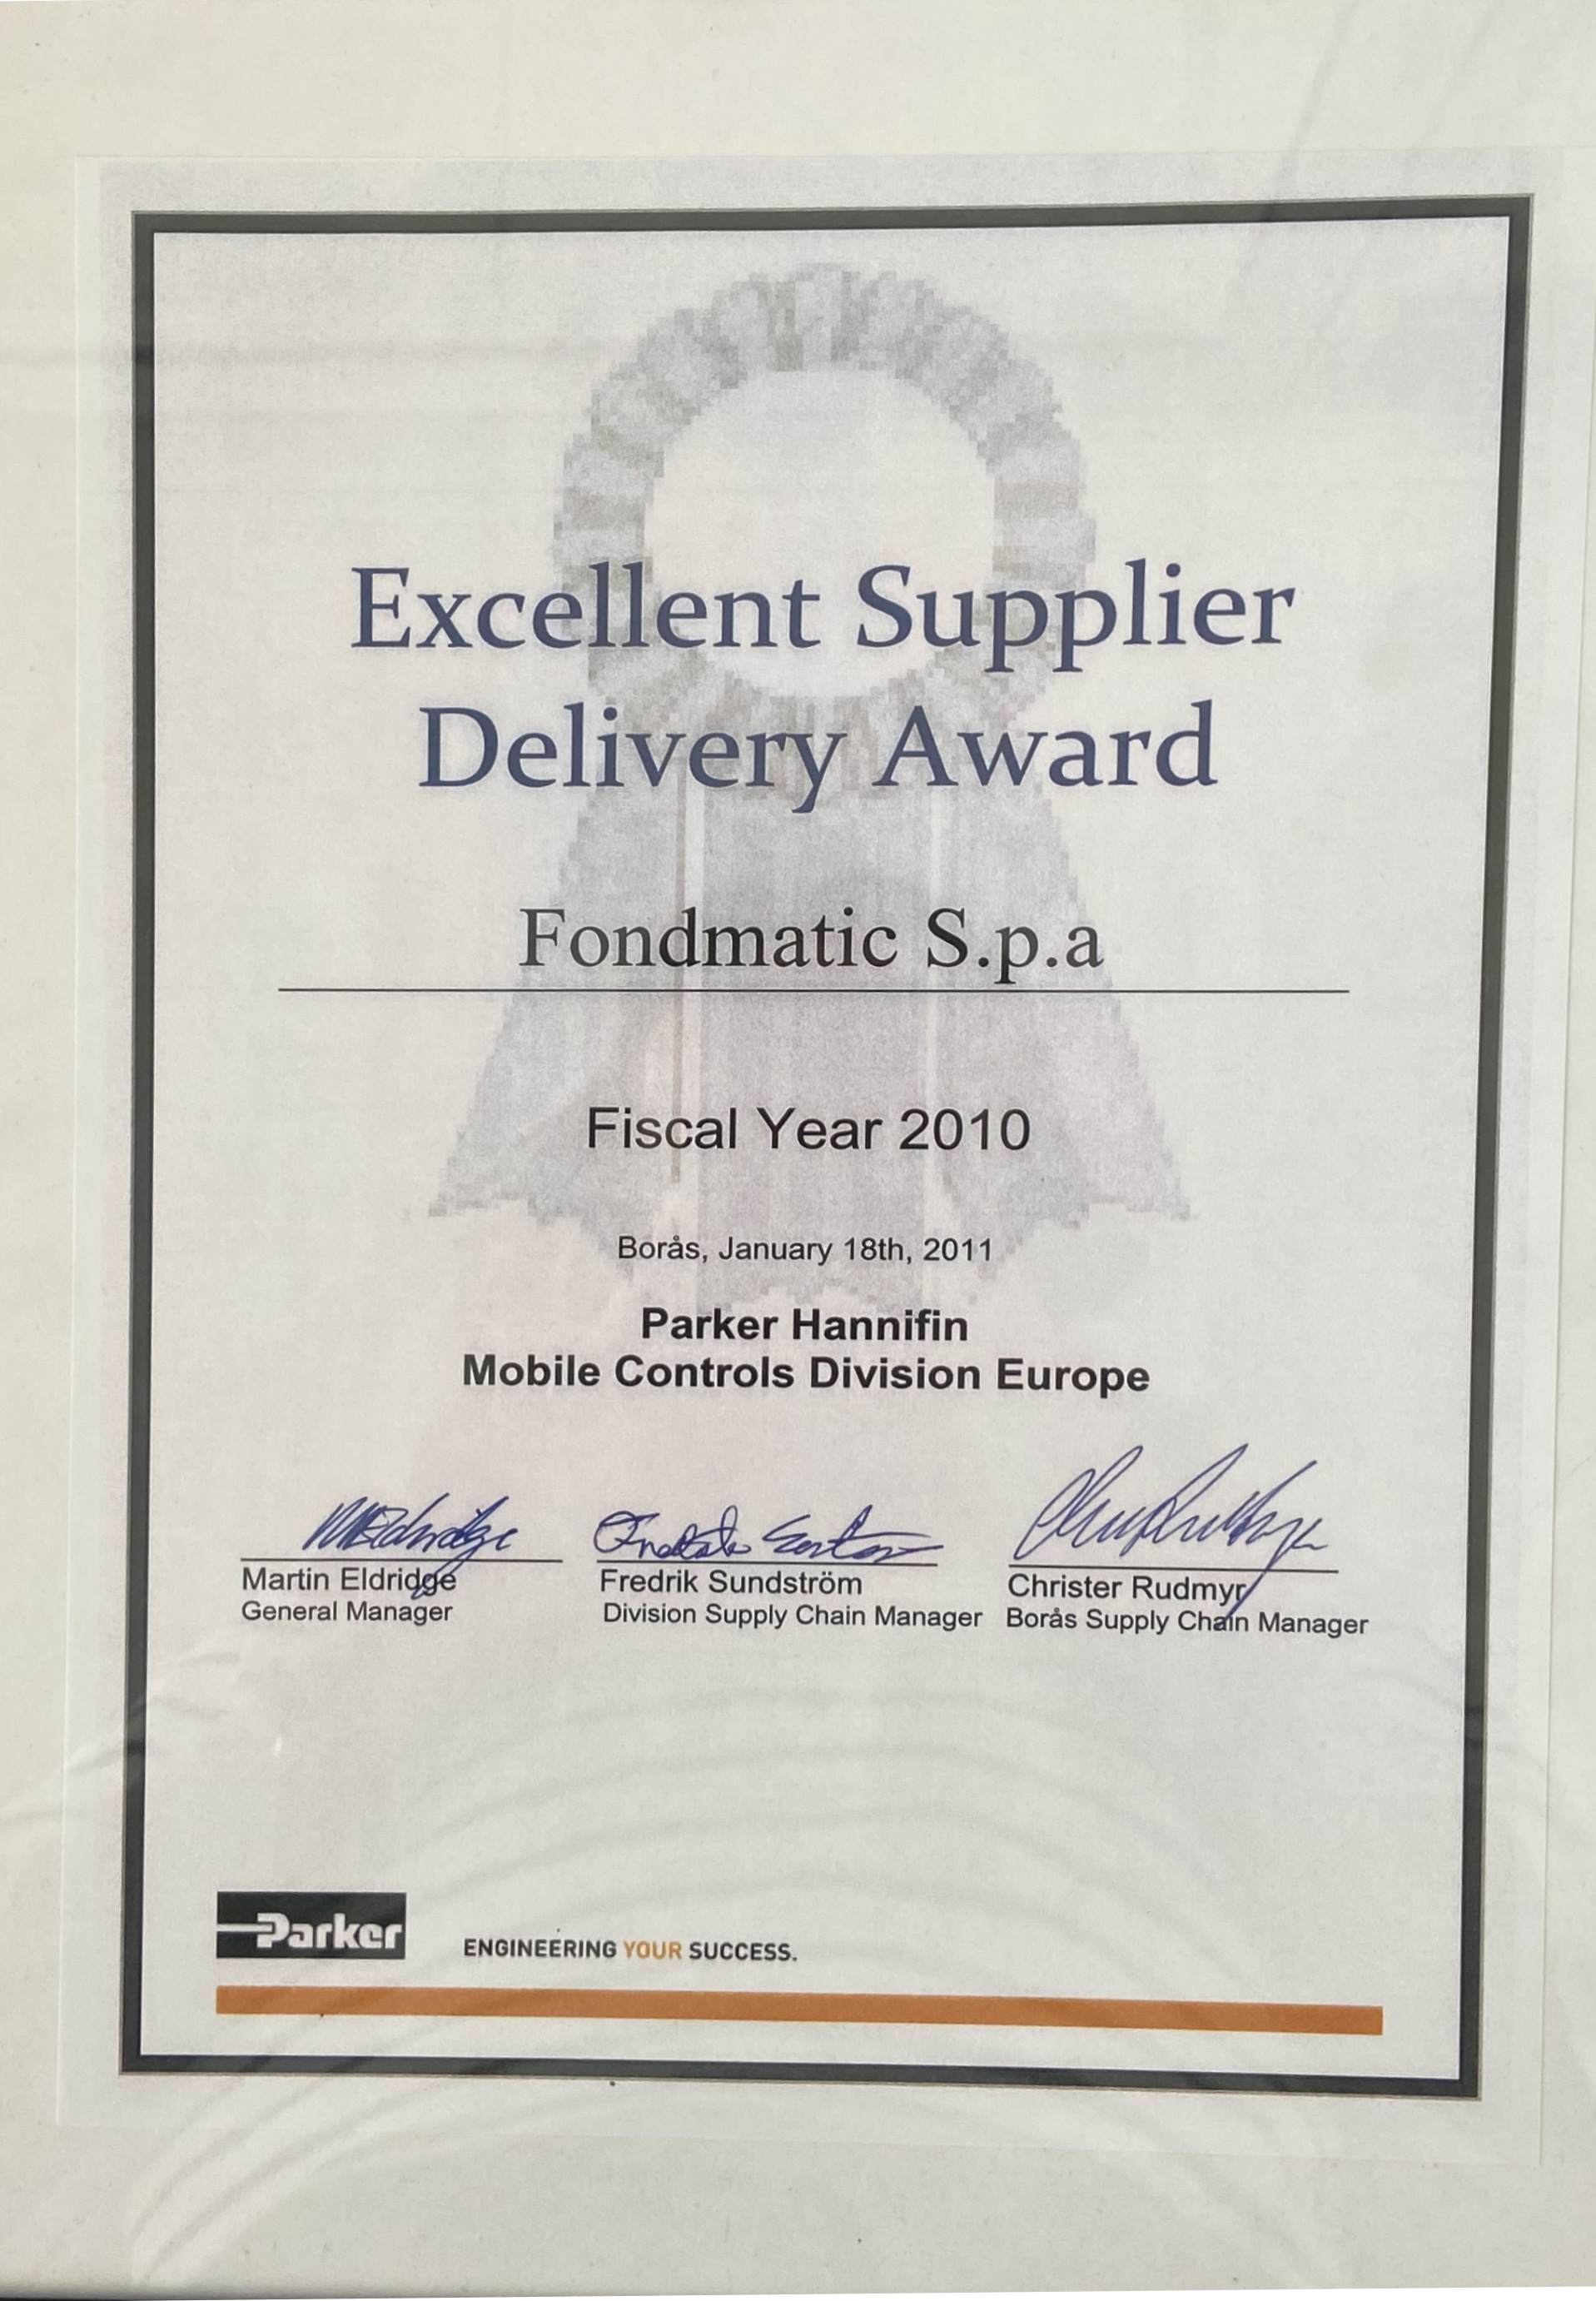 Delivery award